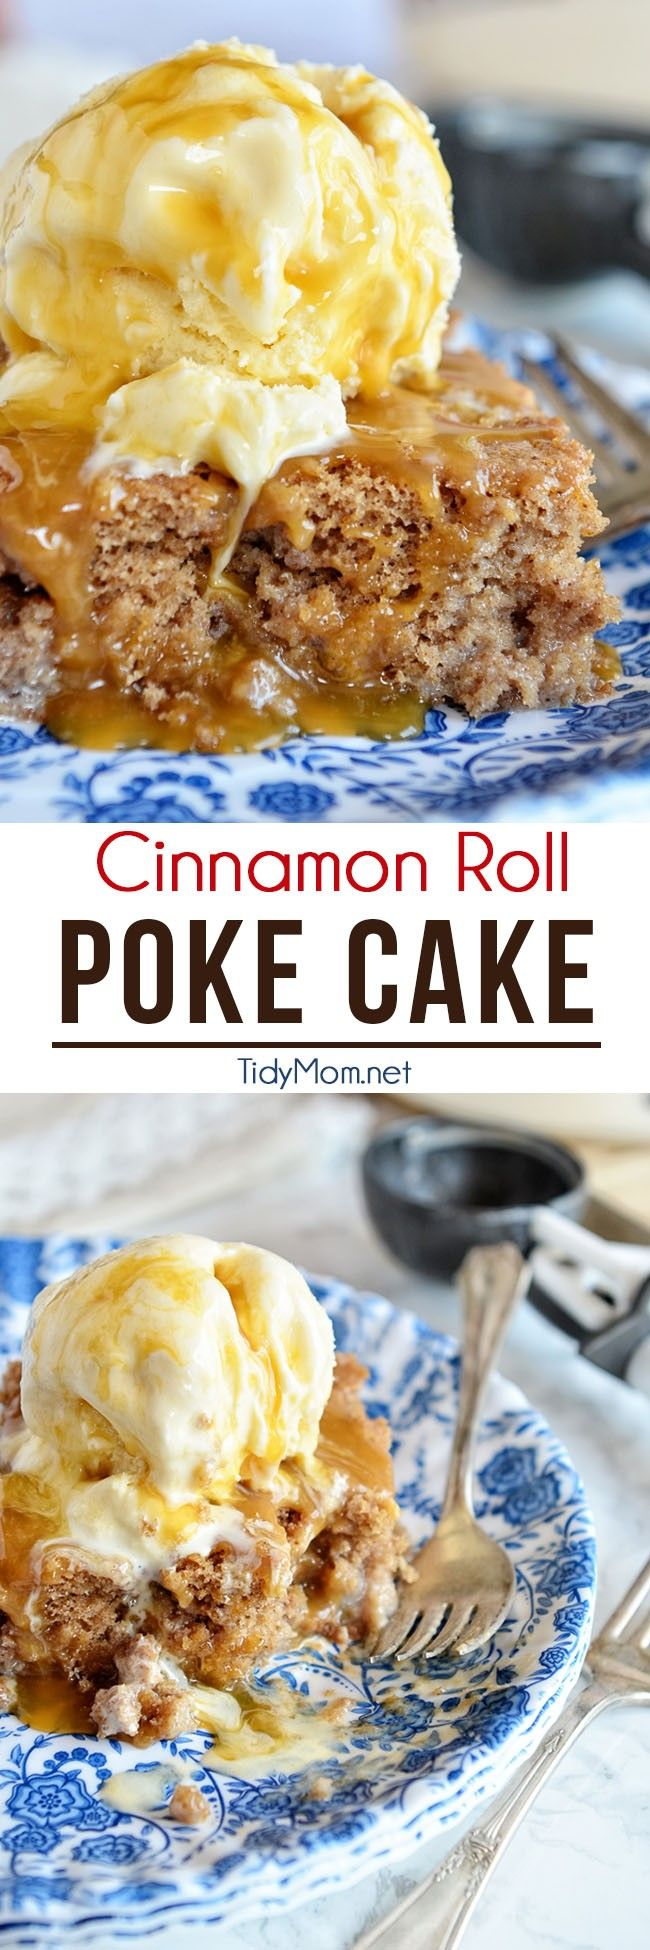 Transform a boxed-mix cake into a delicious cinnamon roll-flavored poke cake. Serve with vanilla ice cream and caramel sauce and watch it disappear!